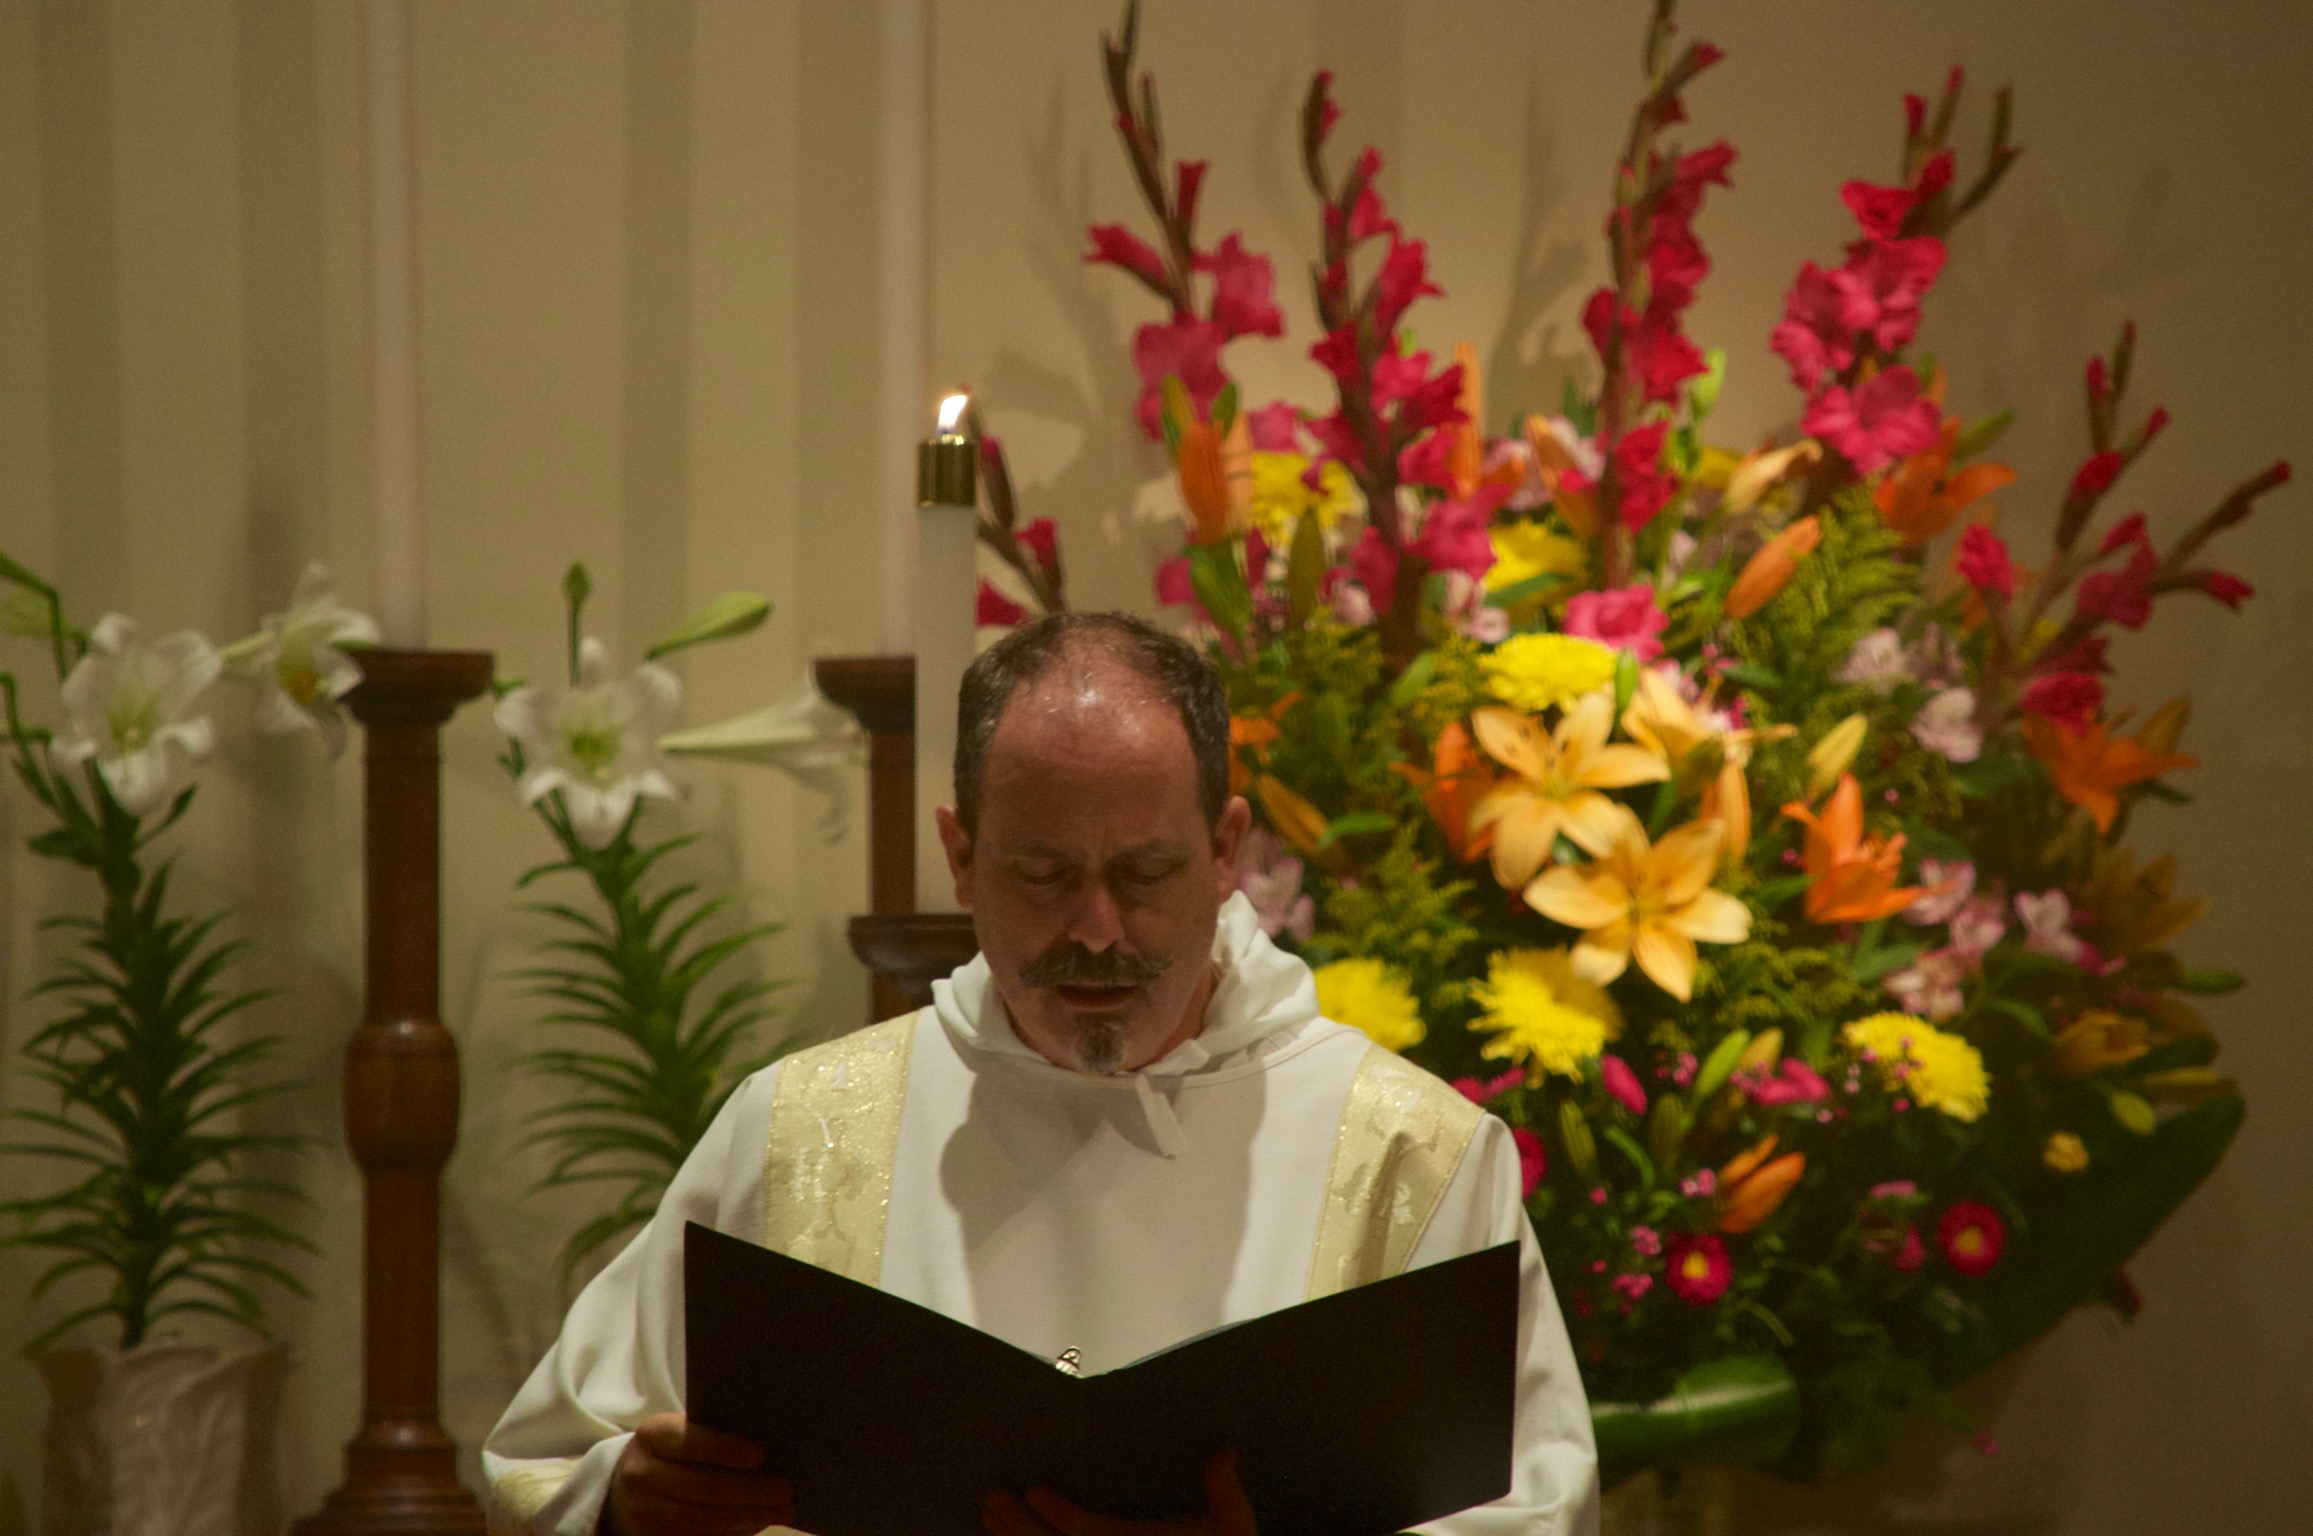 The Subdeacon chants the Epistle at the Great Vigil of Easter.